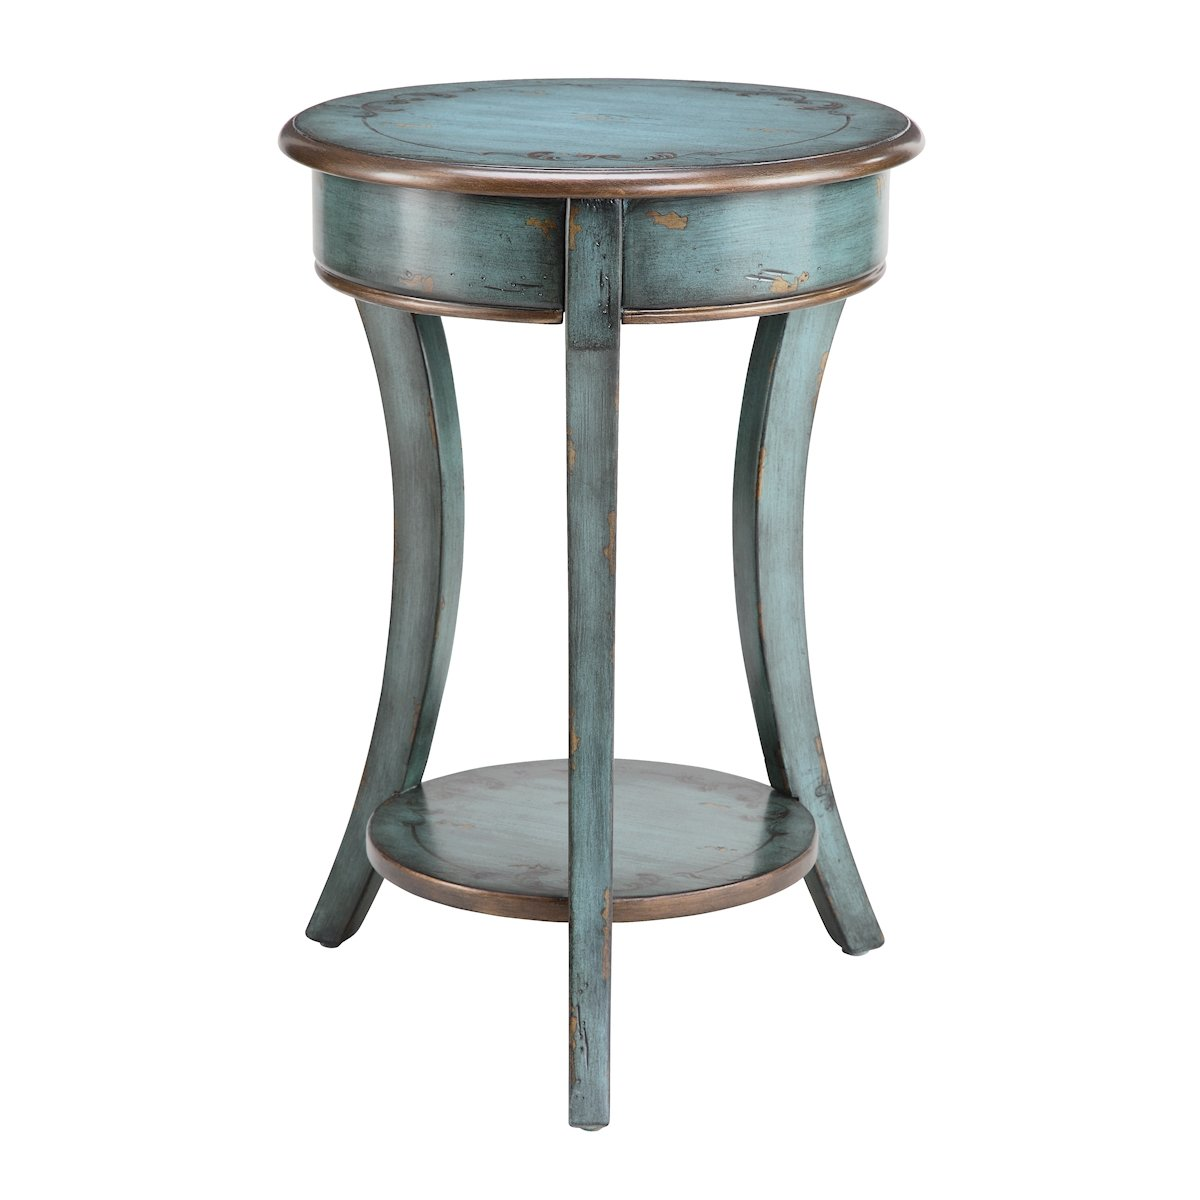 spindle leg side table dominick curved legs accent low round piece glass coffee set vintage asian lamps treasure trove furniture hardwood tile unfinished wood cabinets dining room